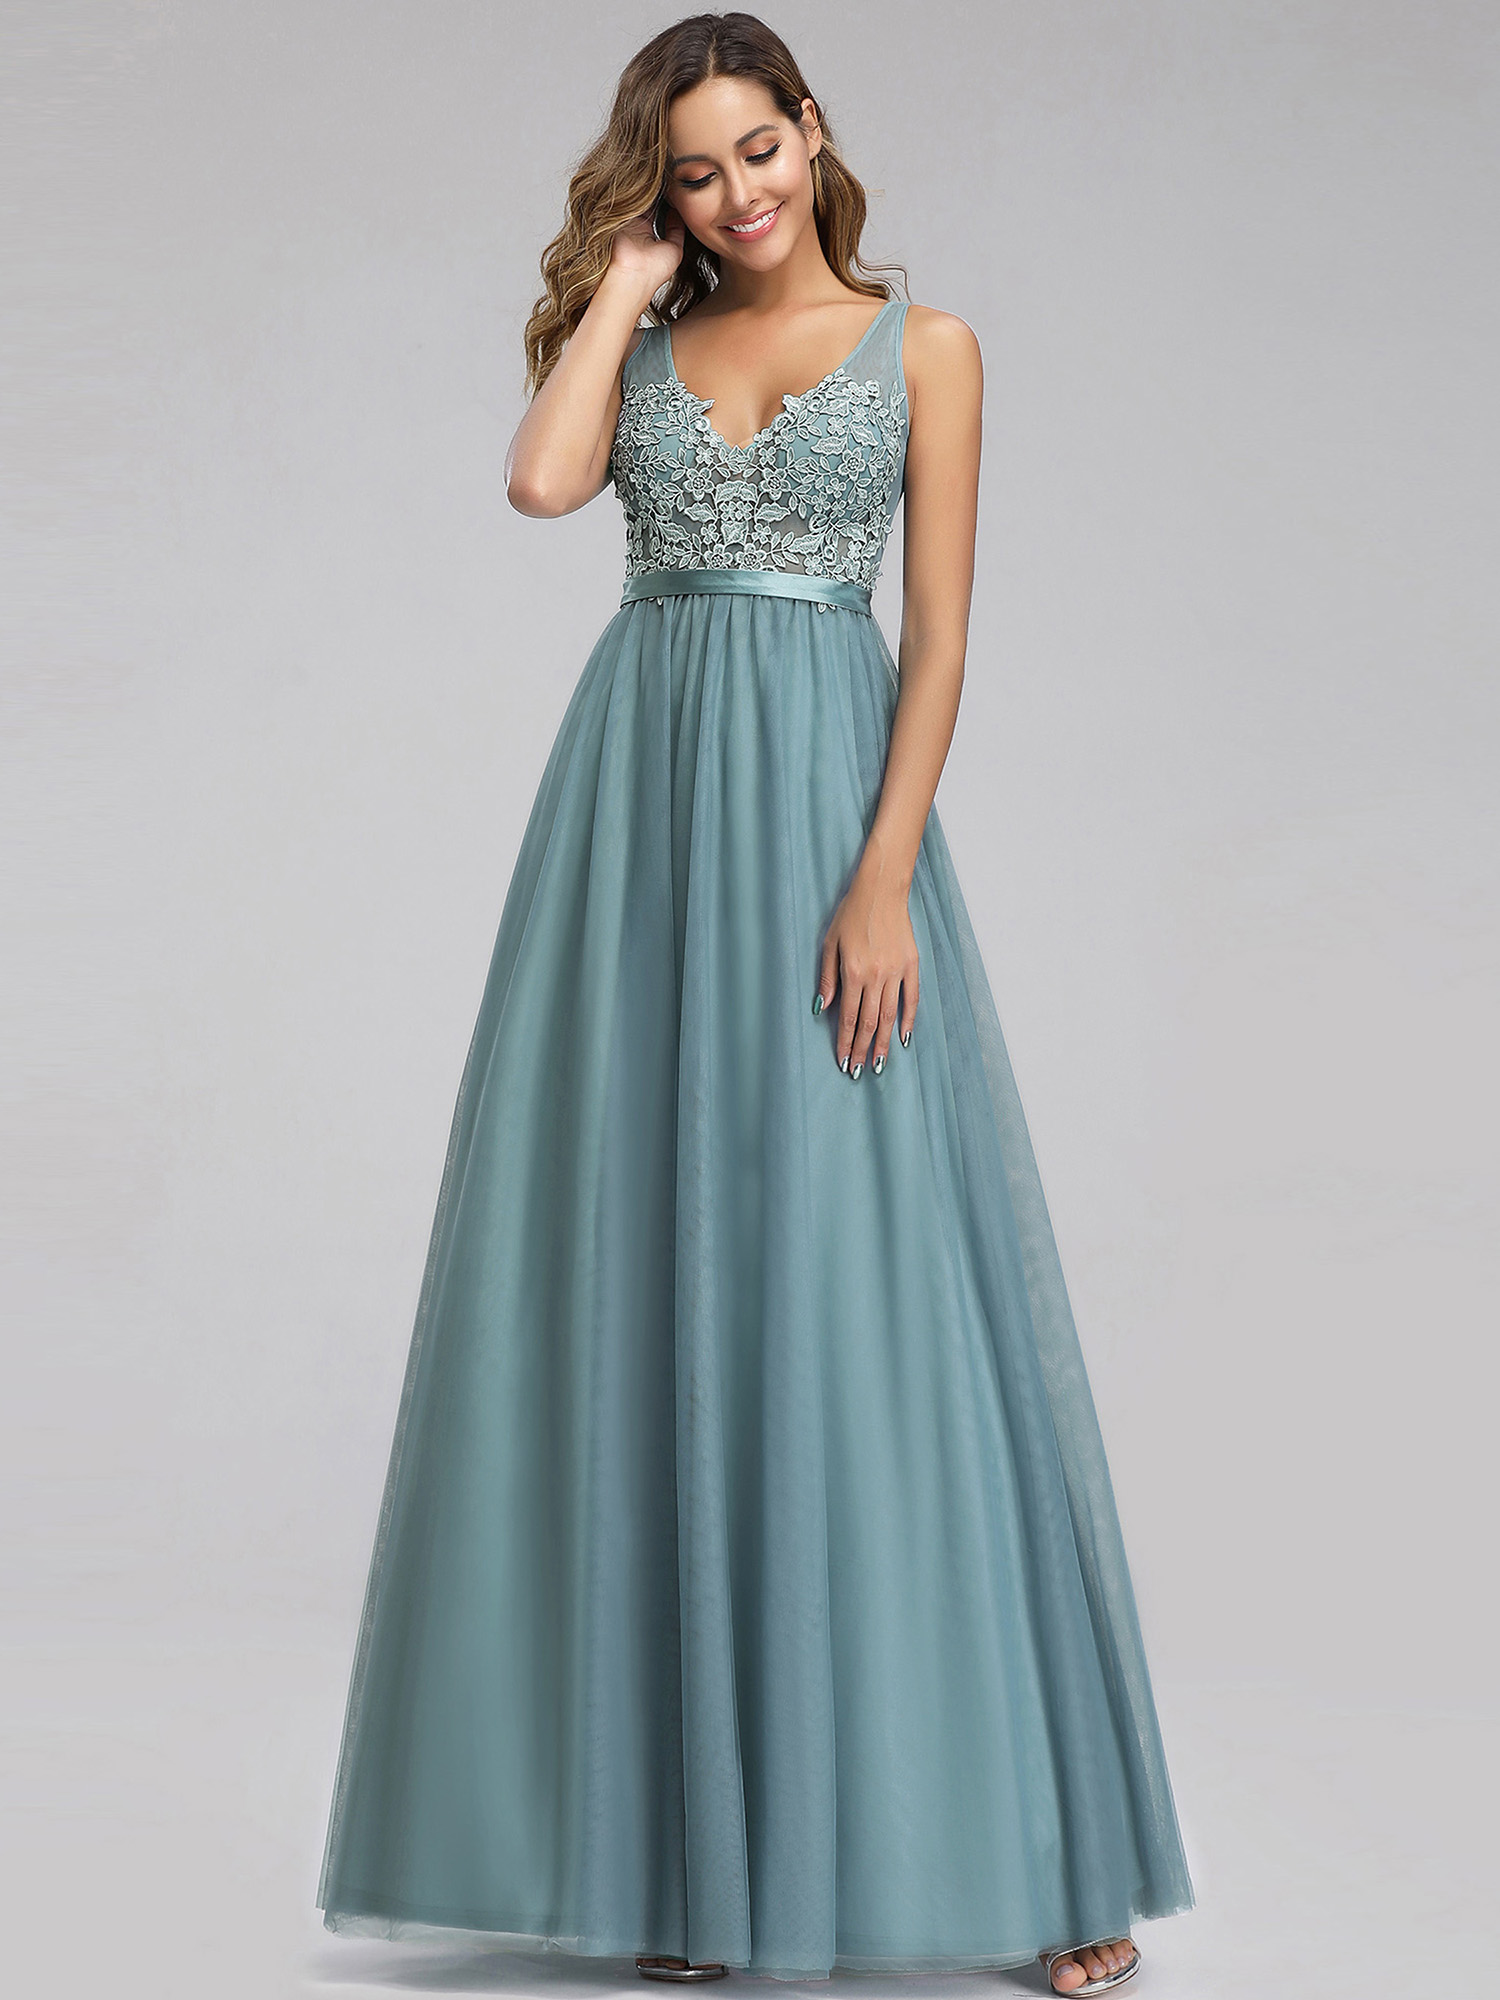 Ever-pretty-Formal-V-neck-Celebrity-Prom-Gown-Long-Evening-A-line-Cocktail-Dress thumbnail 7